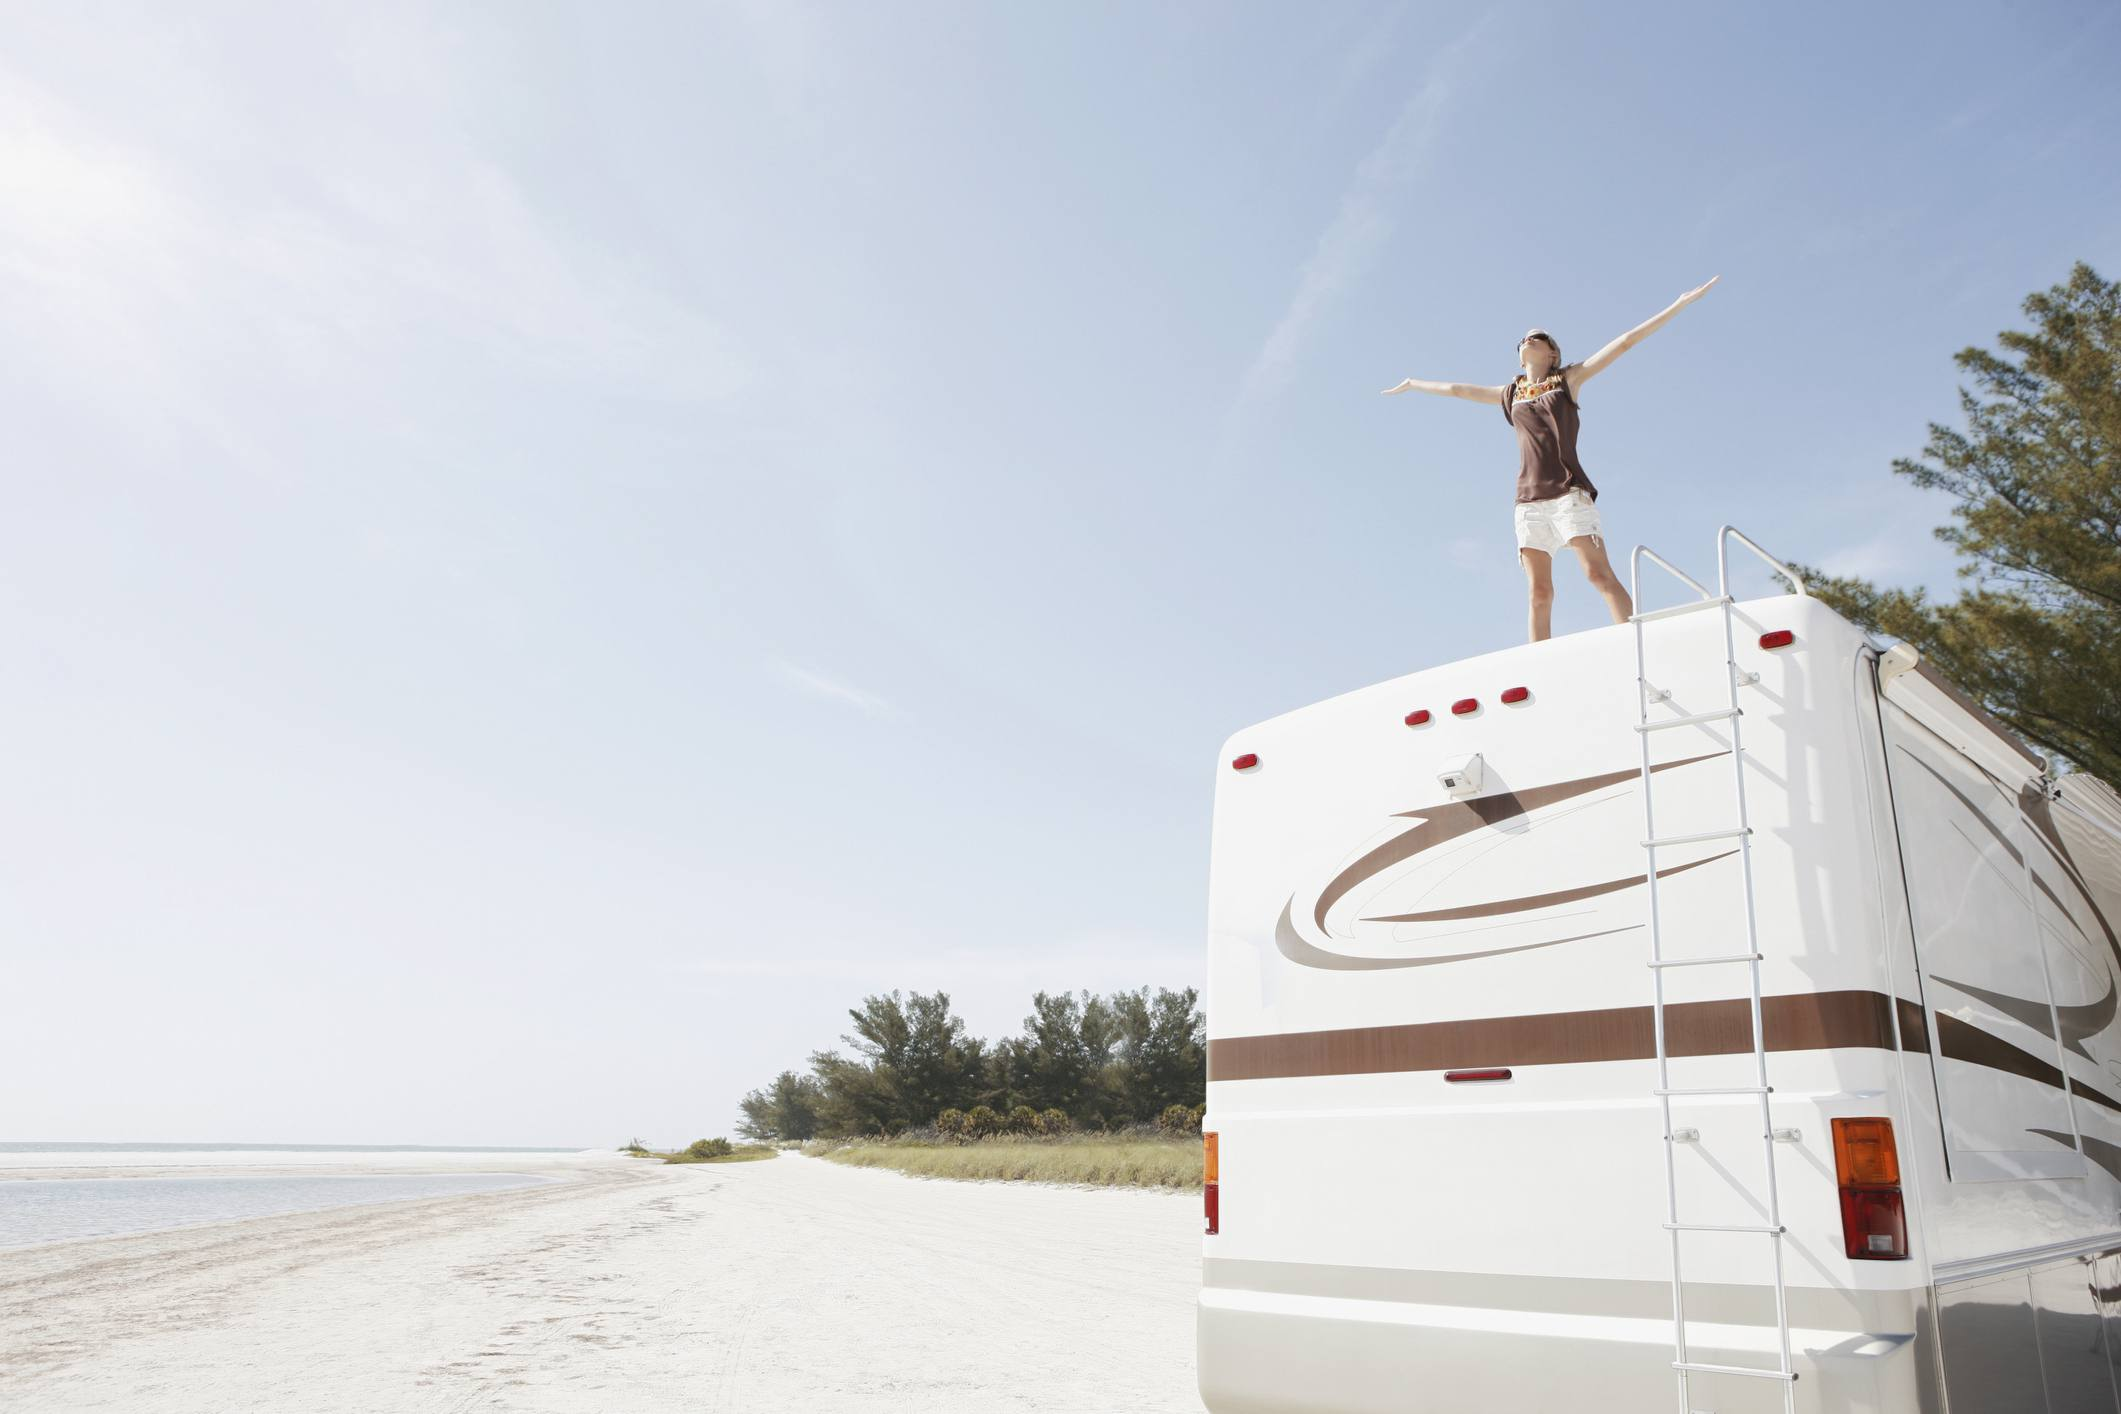 Woman on an RV in Florida